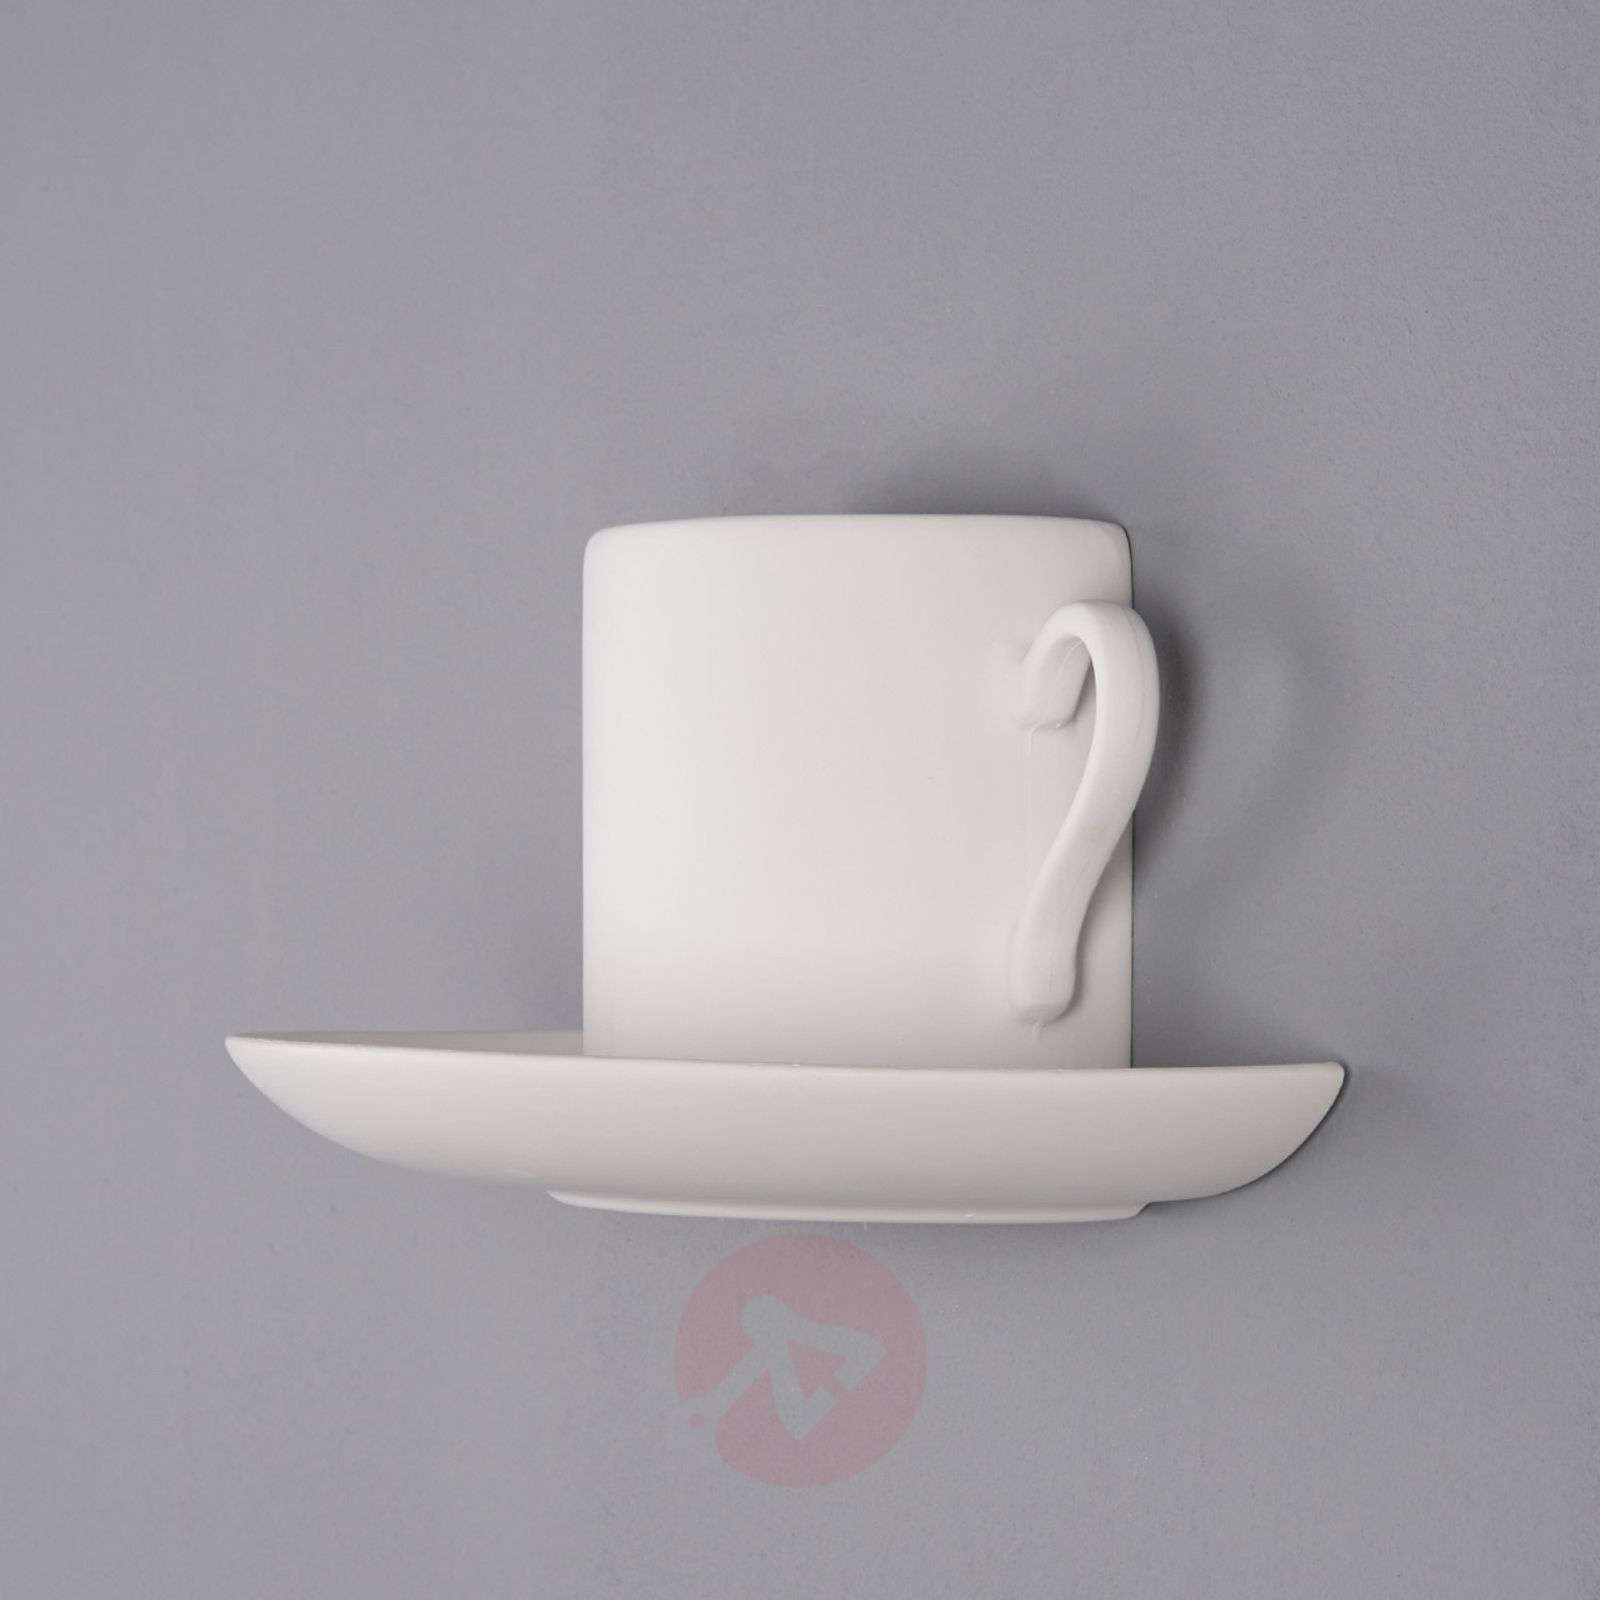 Paintable Plaster Wall Lights : Pocillo Wall Light Paintable Plaster Lights.co.uk